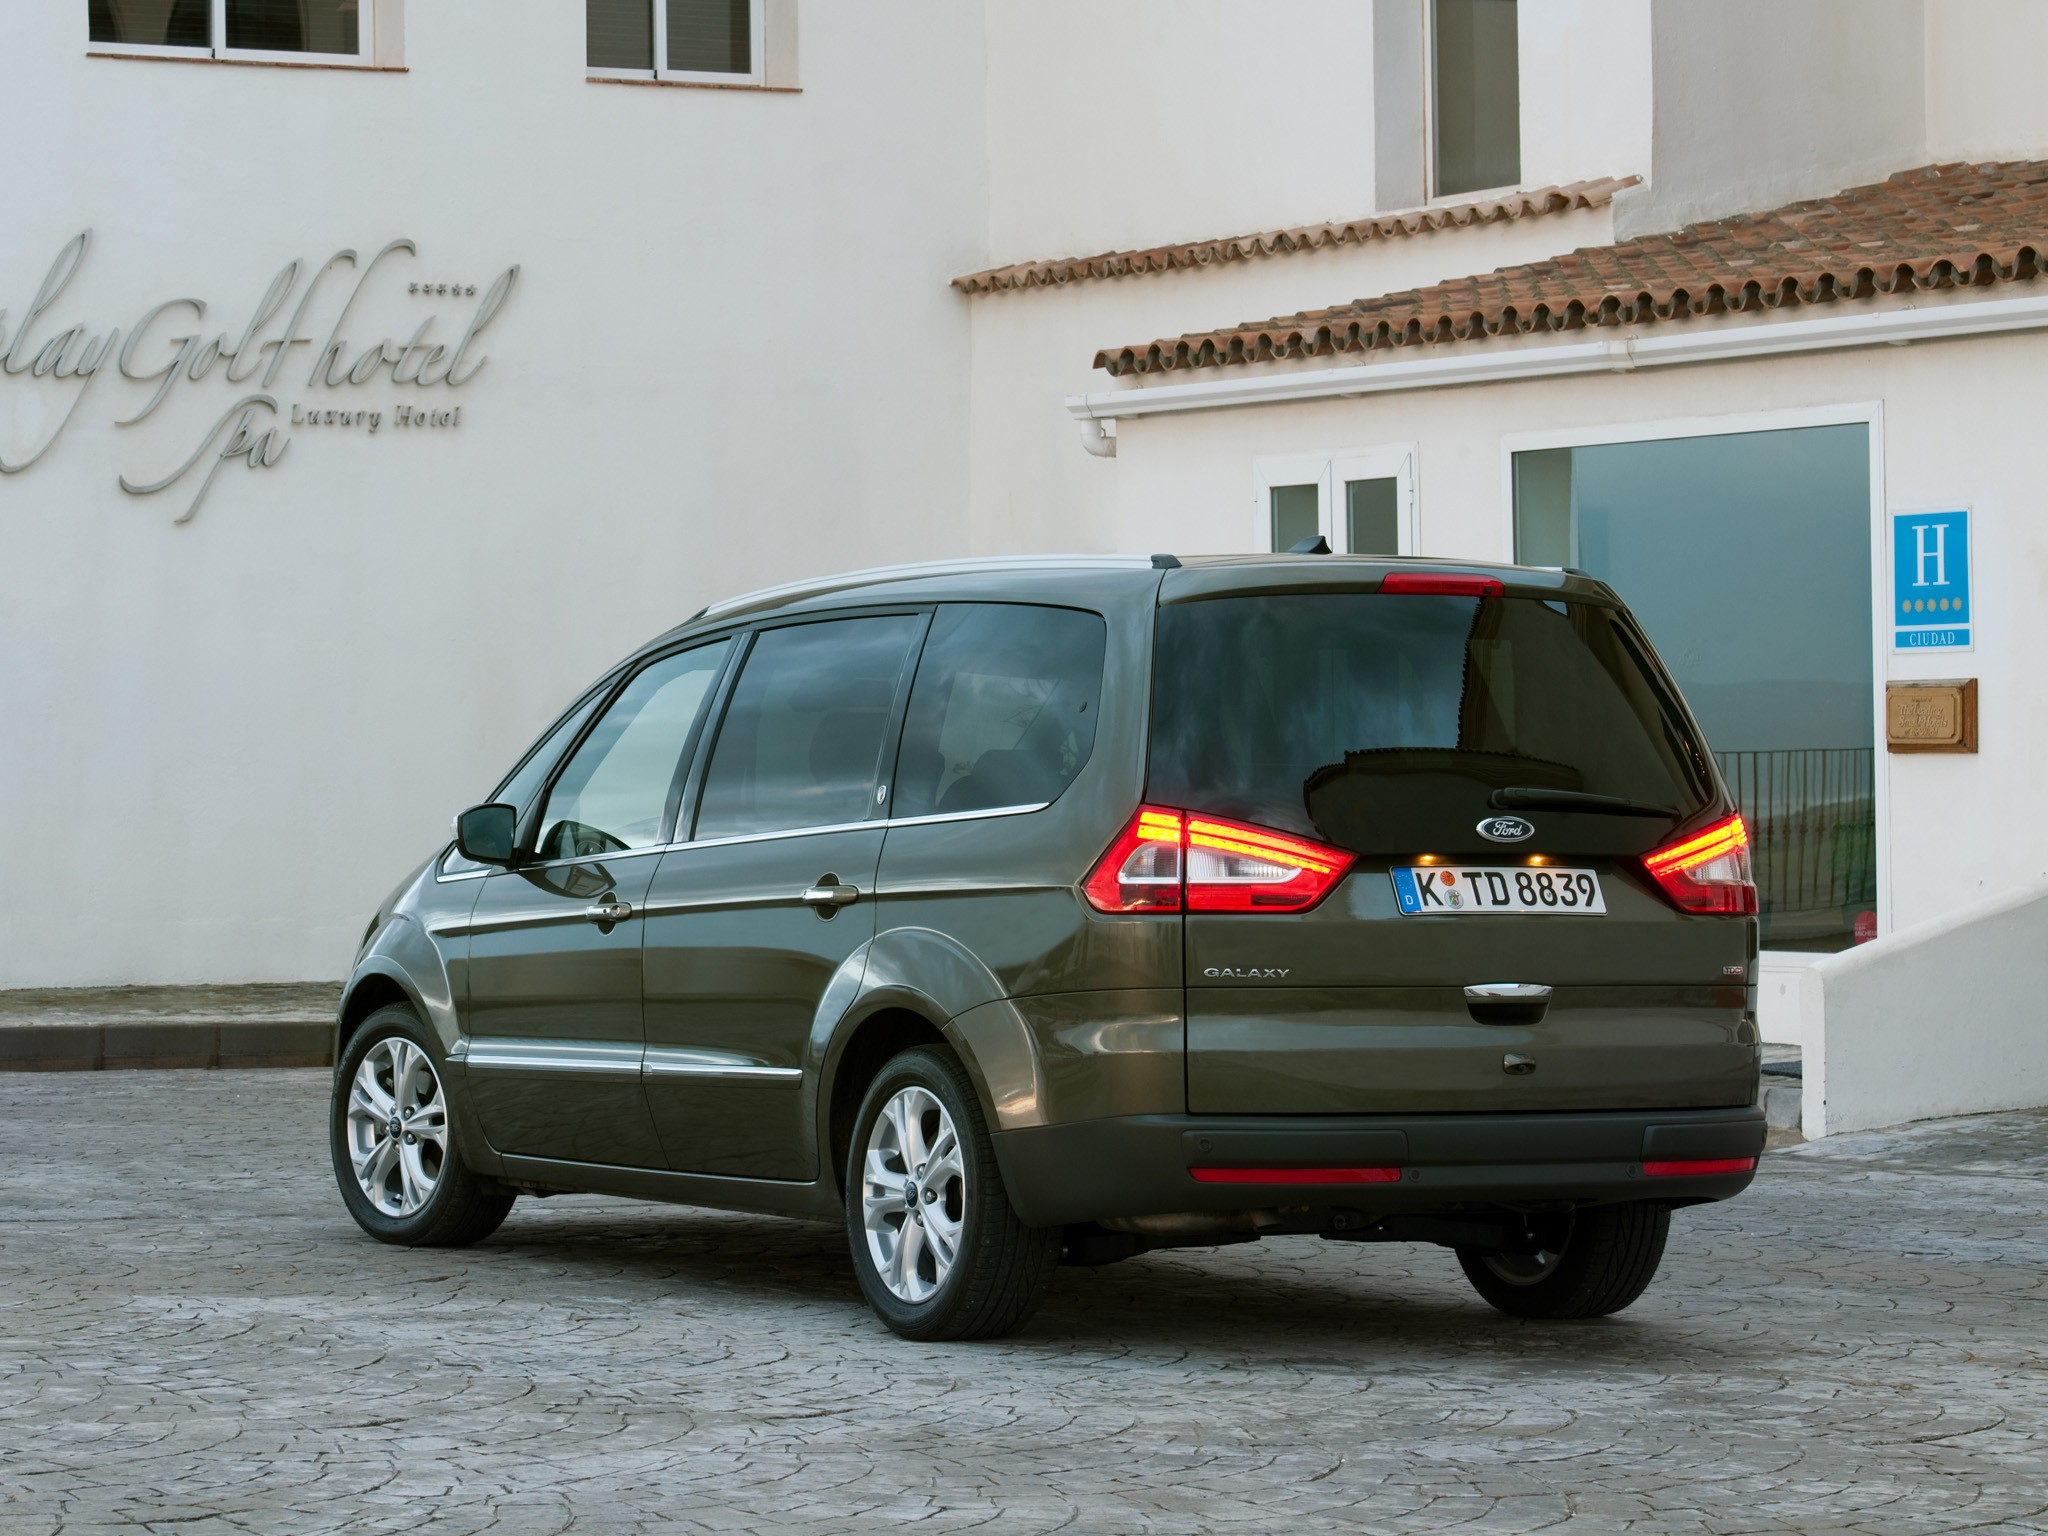 Ford Galaxy 1.8 2009 photo - 5